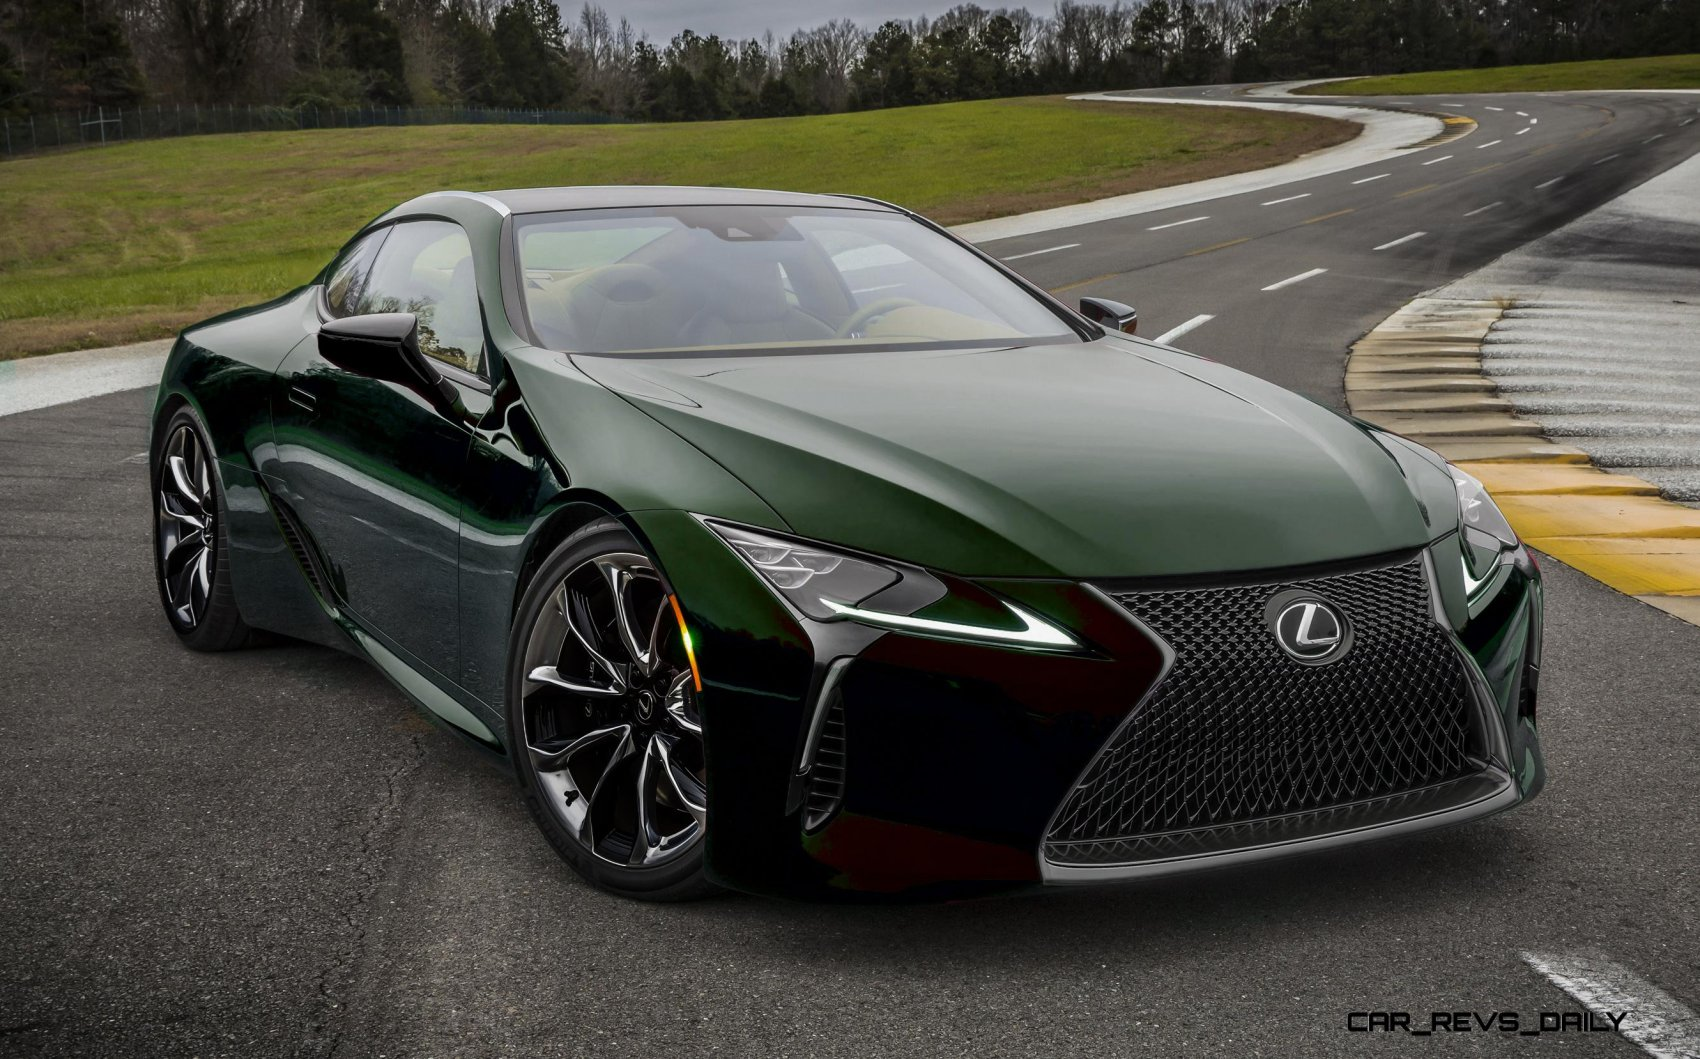 2017 Lexus LC500 COLORS Visualizer Black Chrome Looks